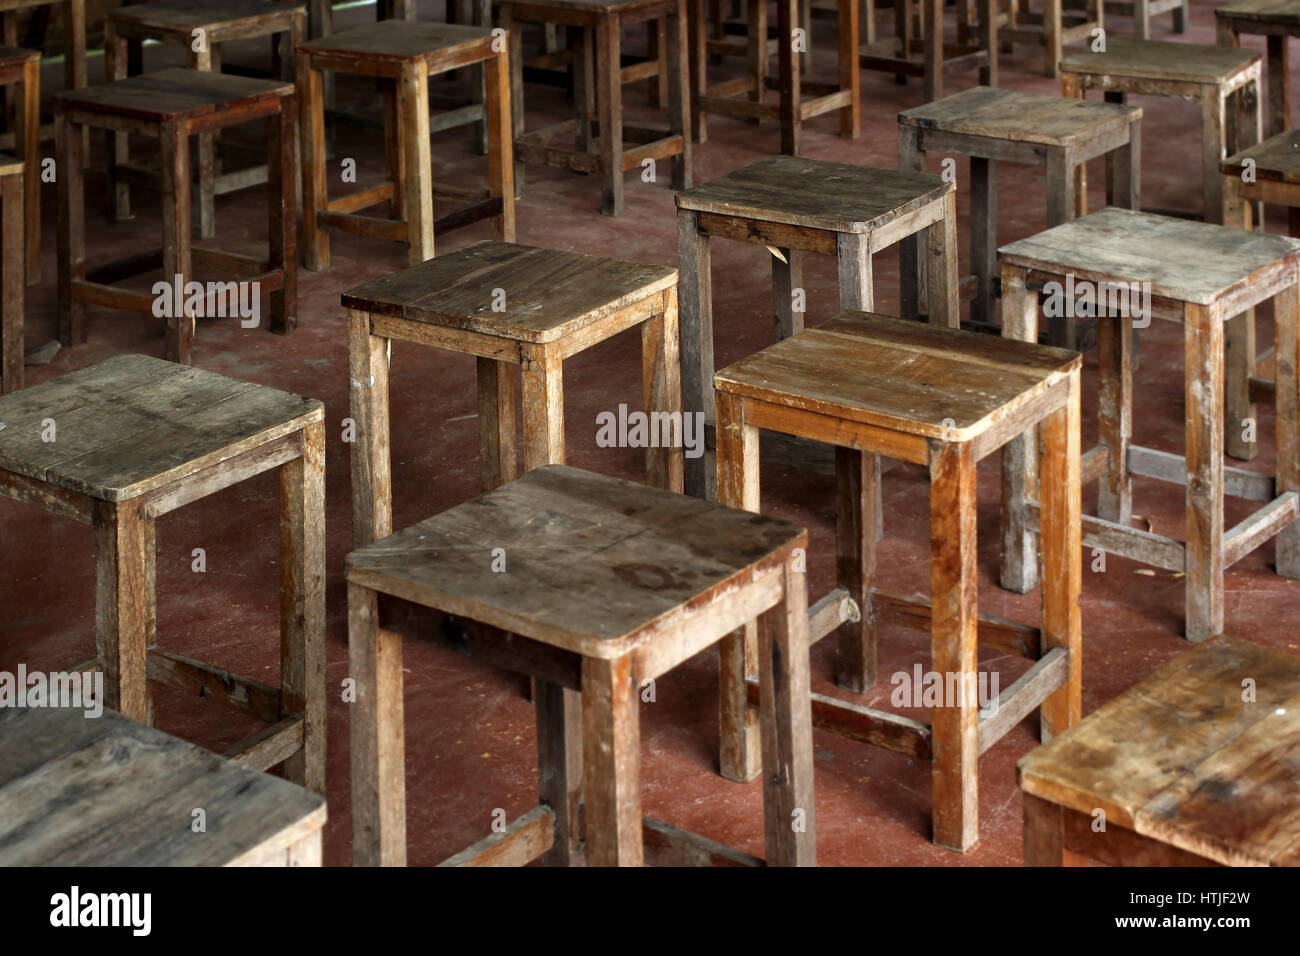 Old wooden chairs - Stock Photo Pile Of Old Wooden Chair In Empty Room